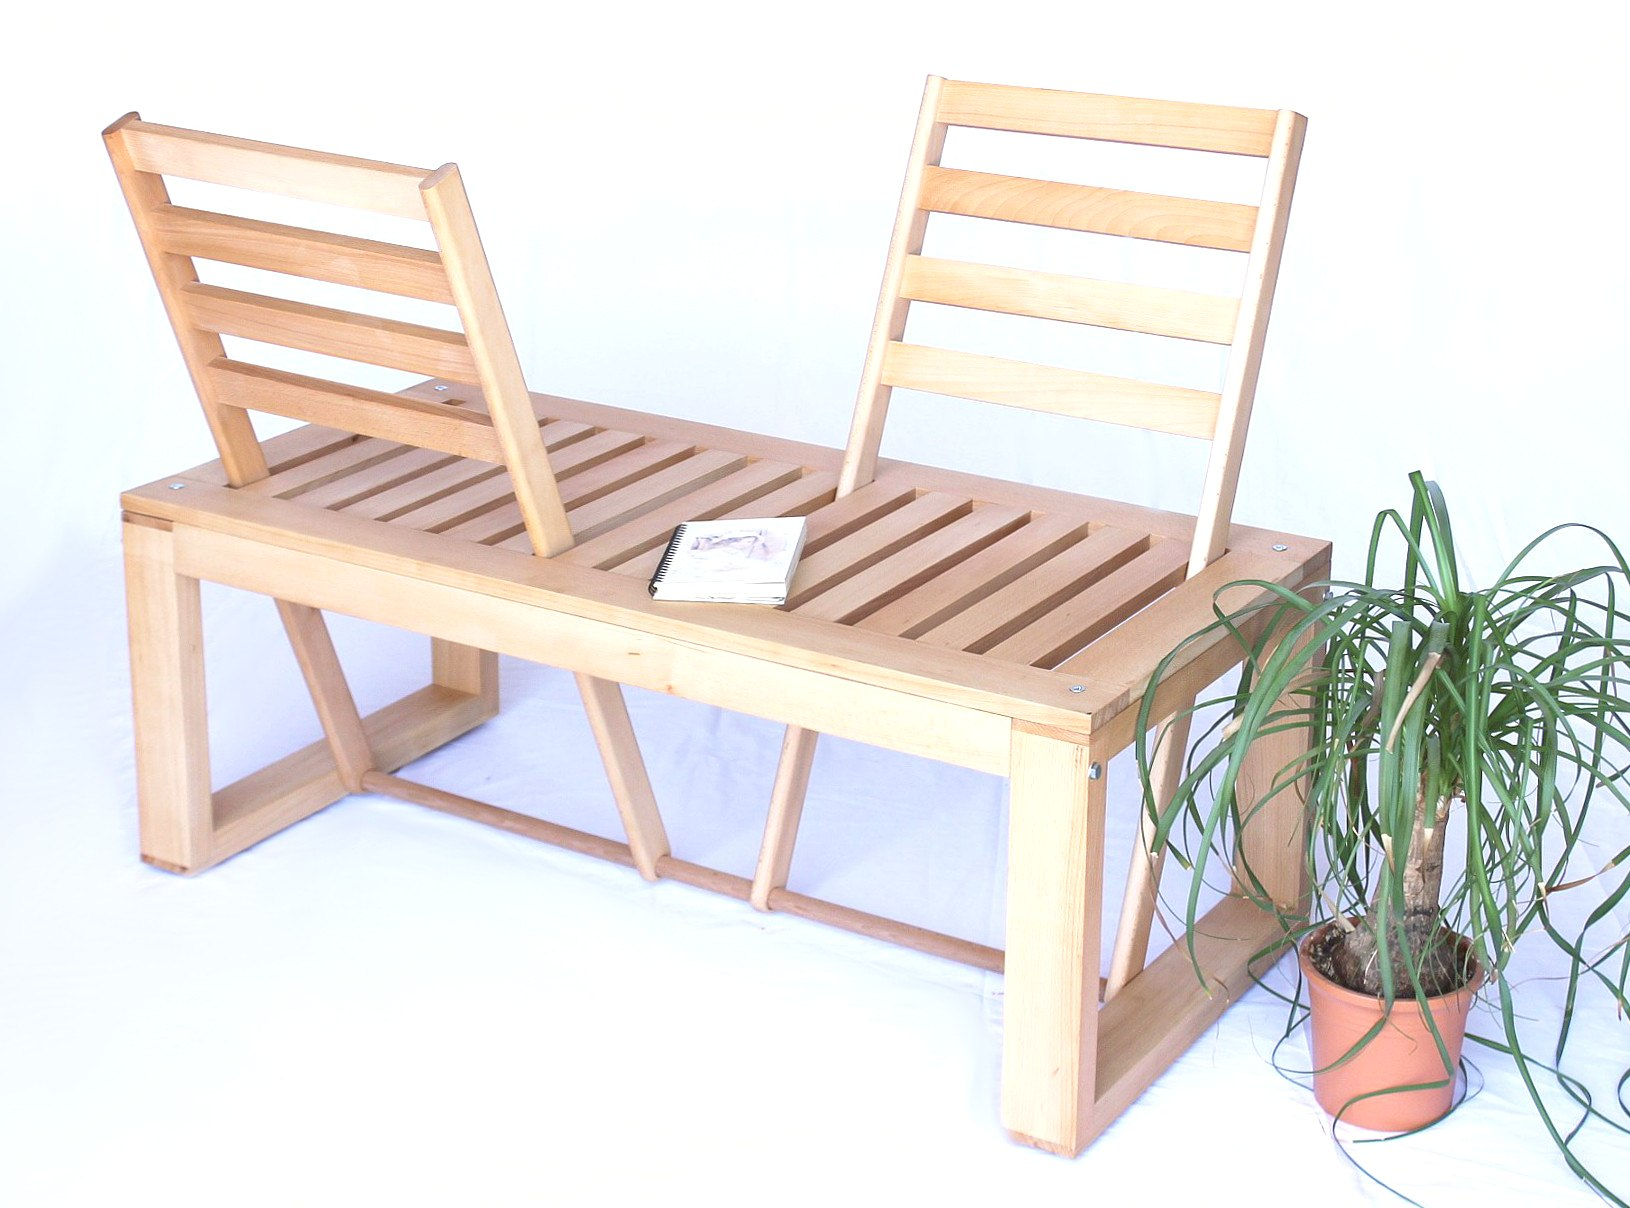 banquette banc de jardin en bois umklappare dossiers banc nature ebay. Black Bedroom Furniture Sets. Home Design Ideas